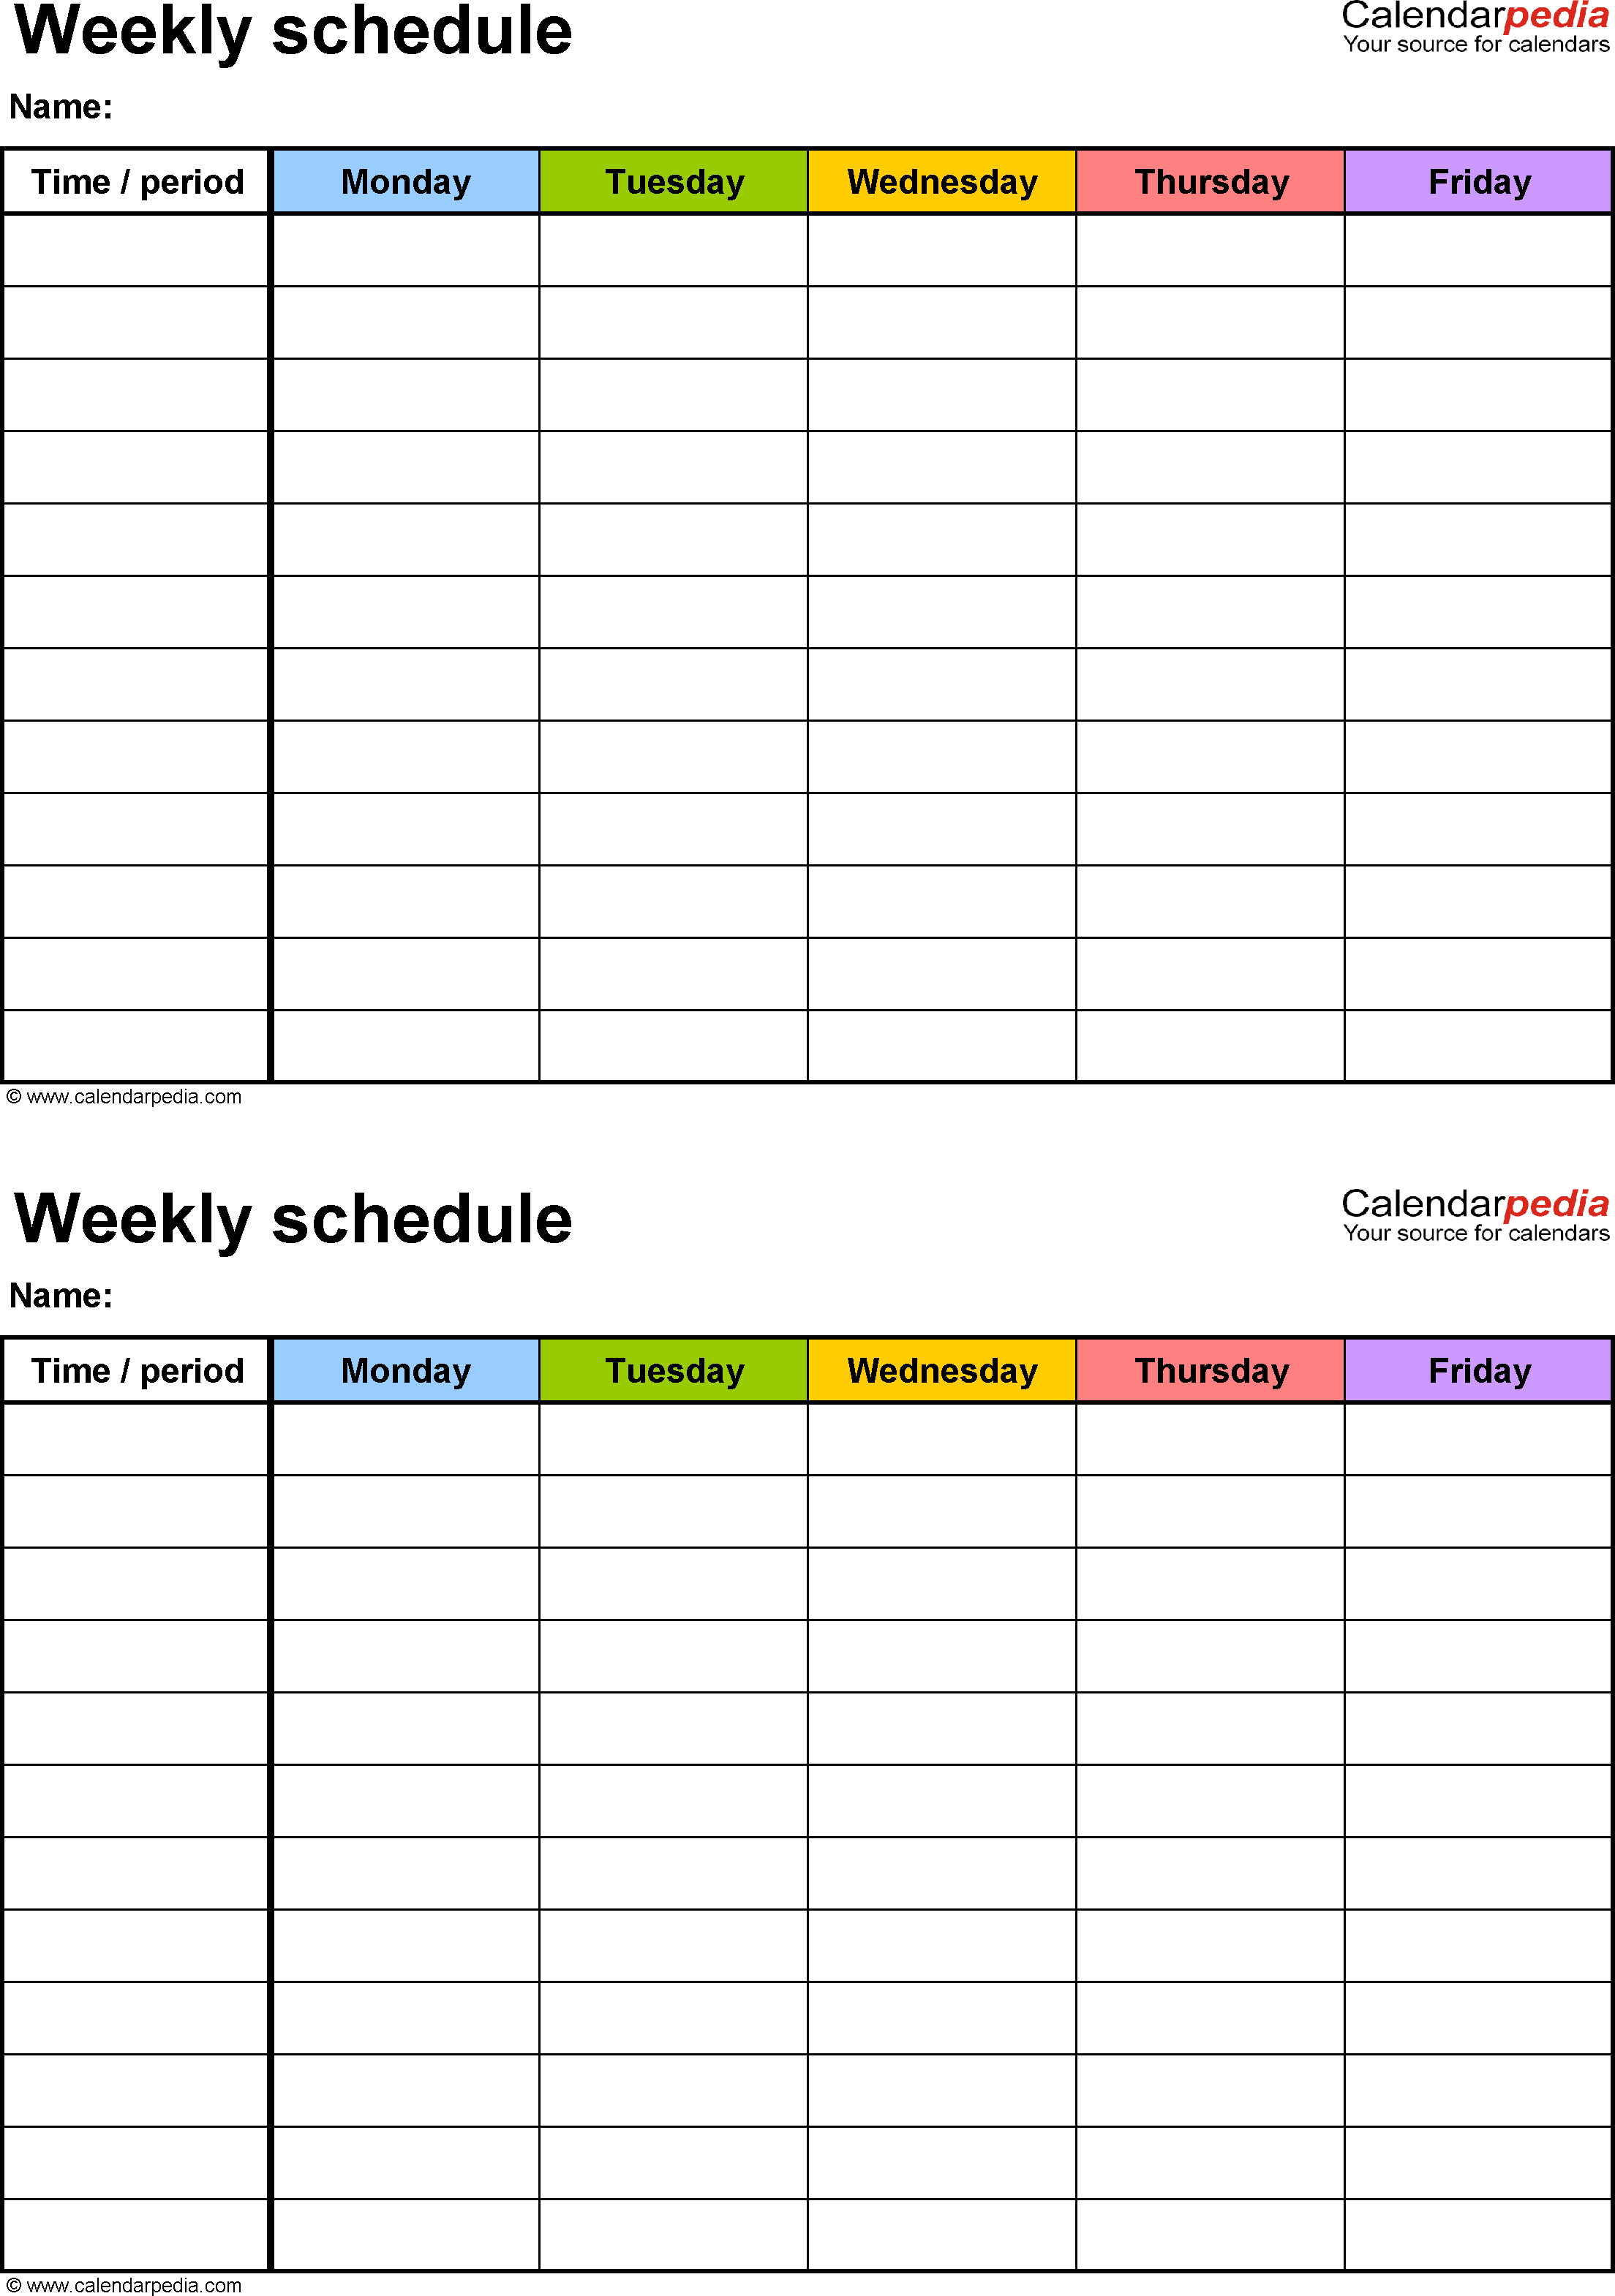 Free Weekly Schedule Templates For Word - 18 Templates throughout One Week Blank Calendar Printable